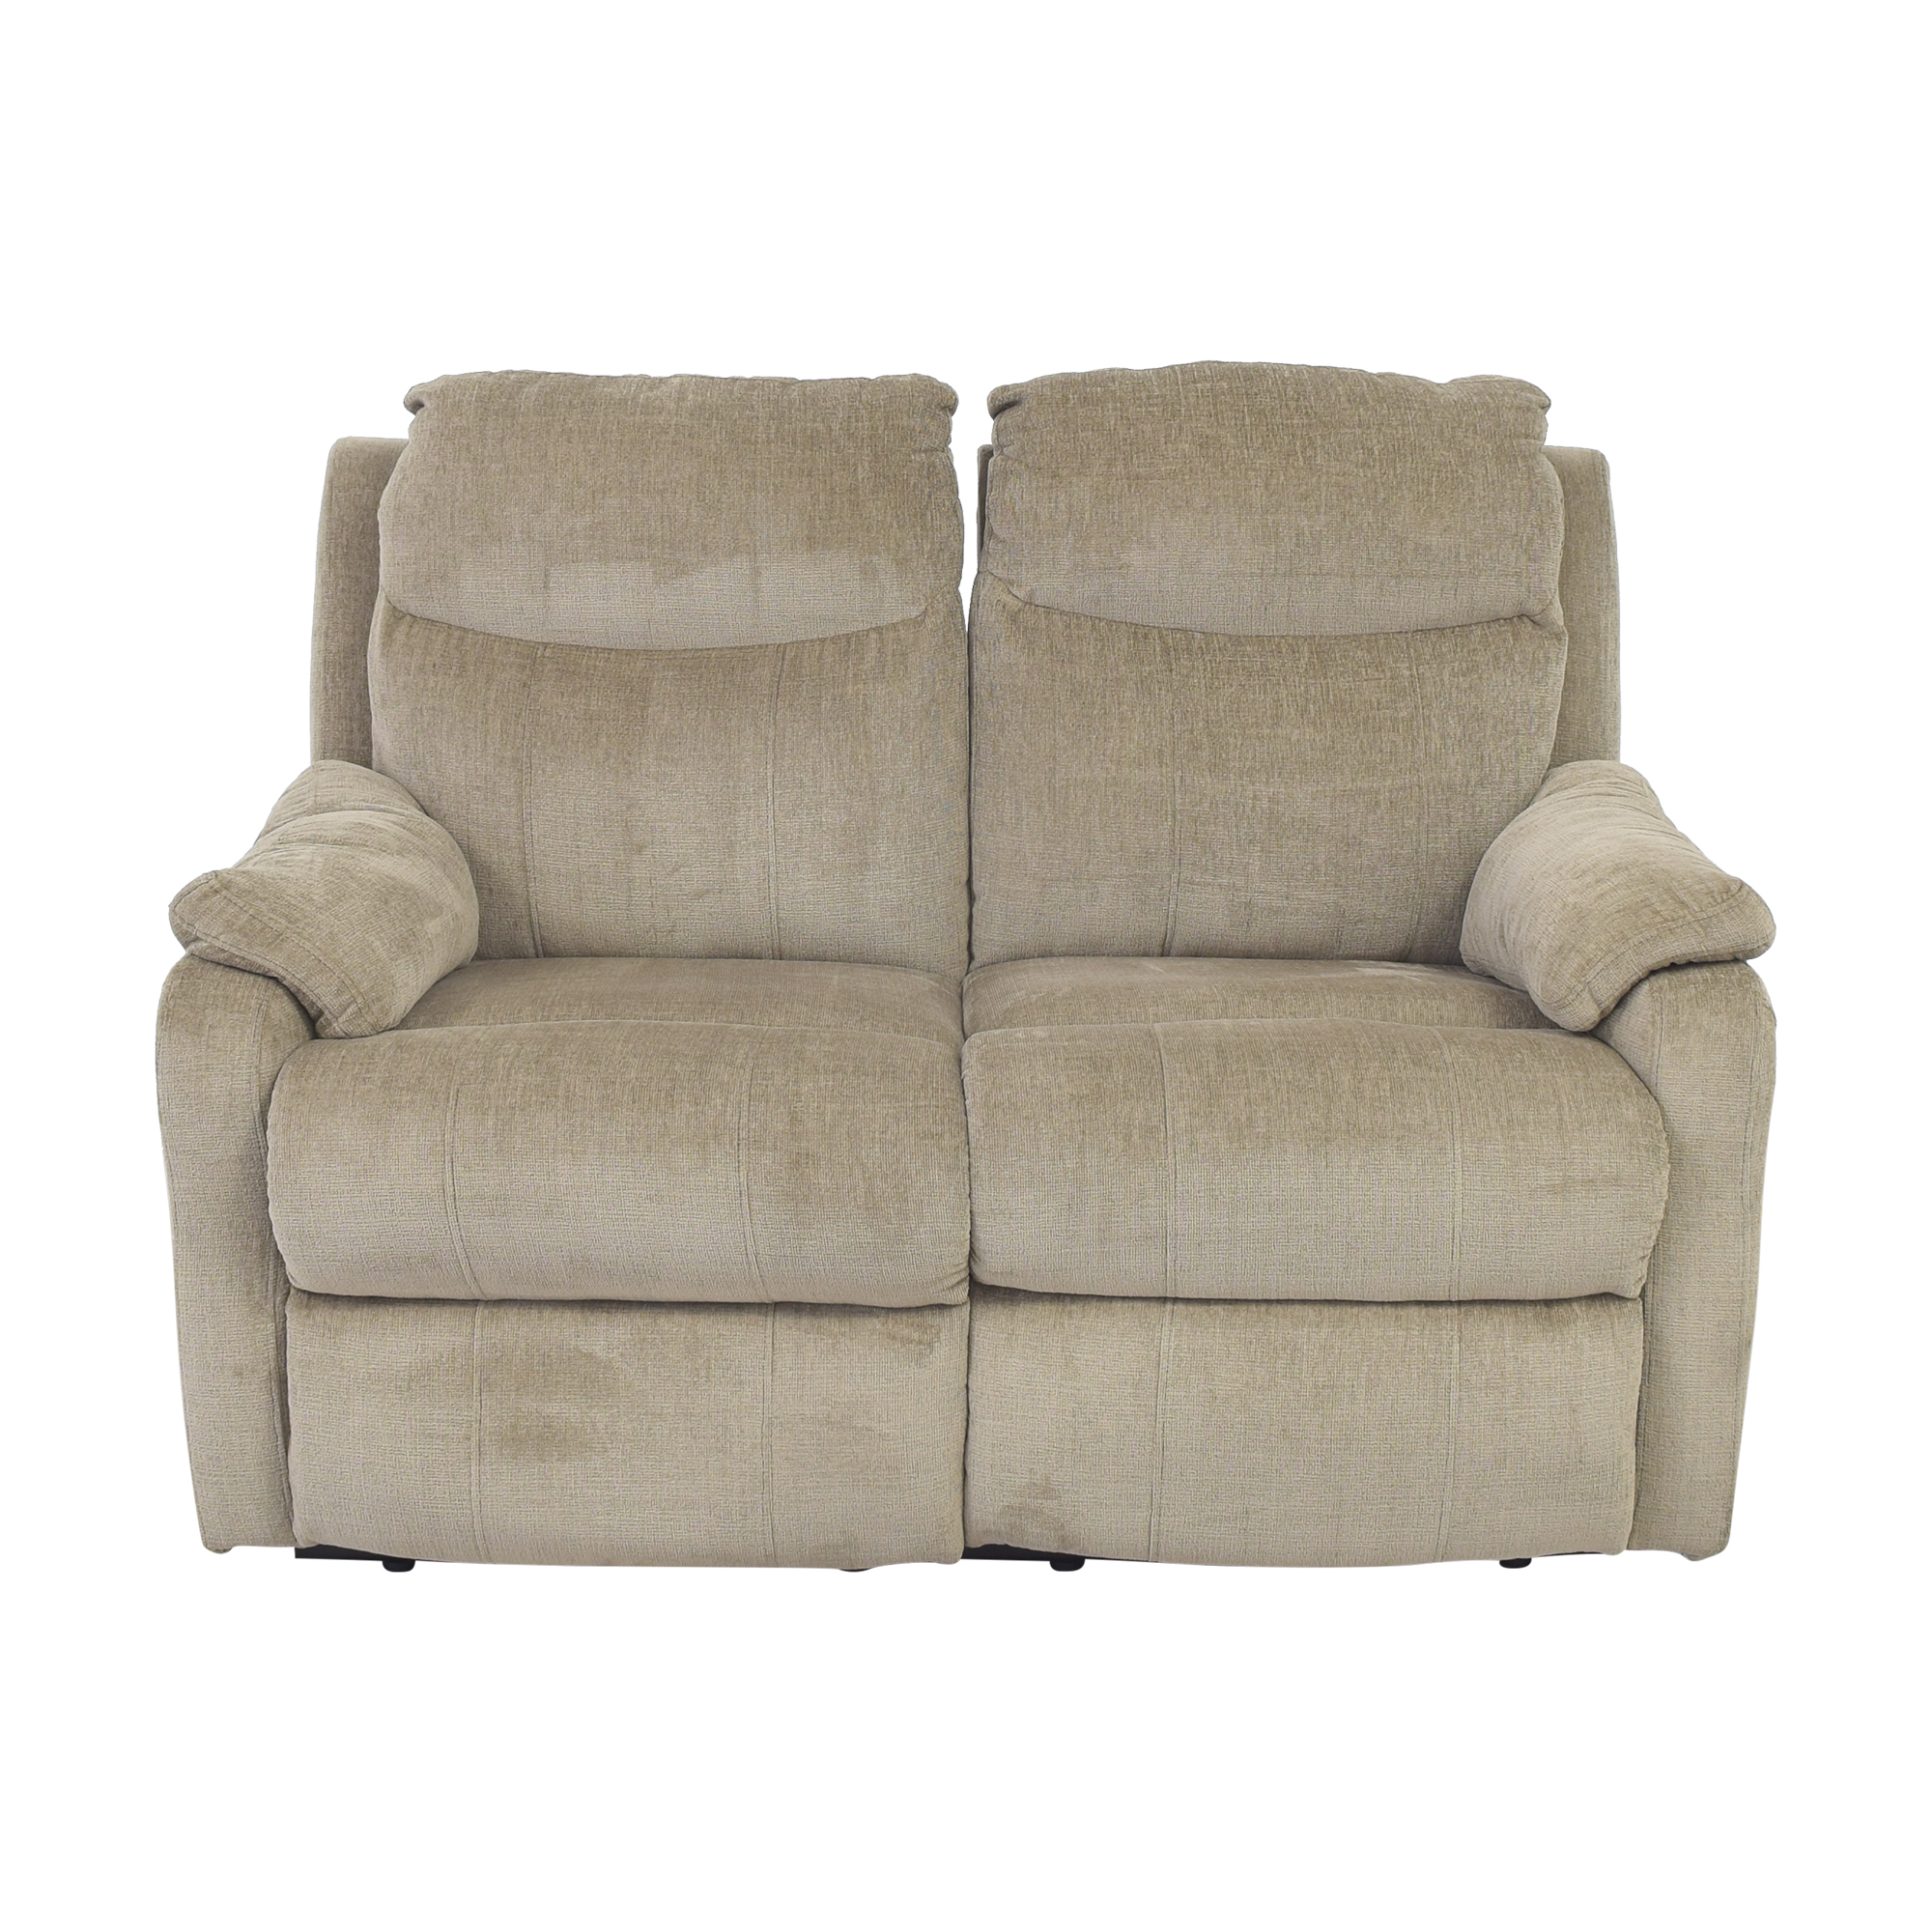 Klaussner Klausner Electric Recliner Loveseat Loveseats